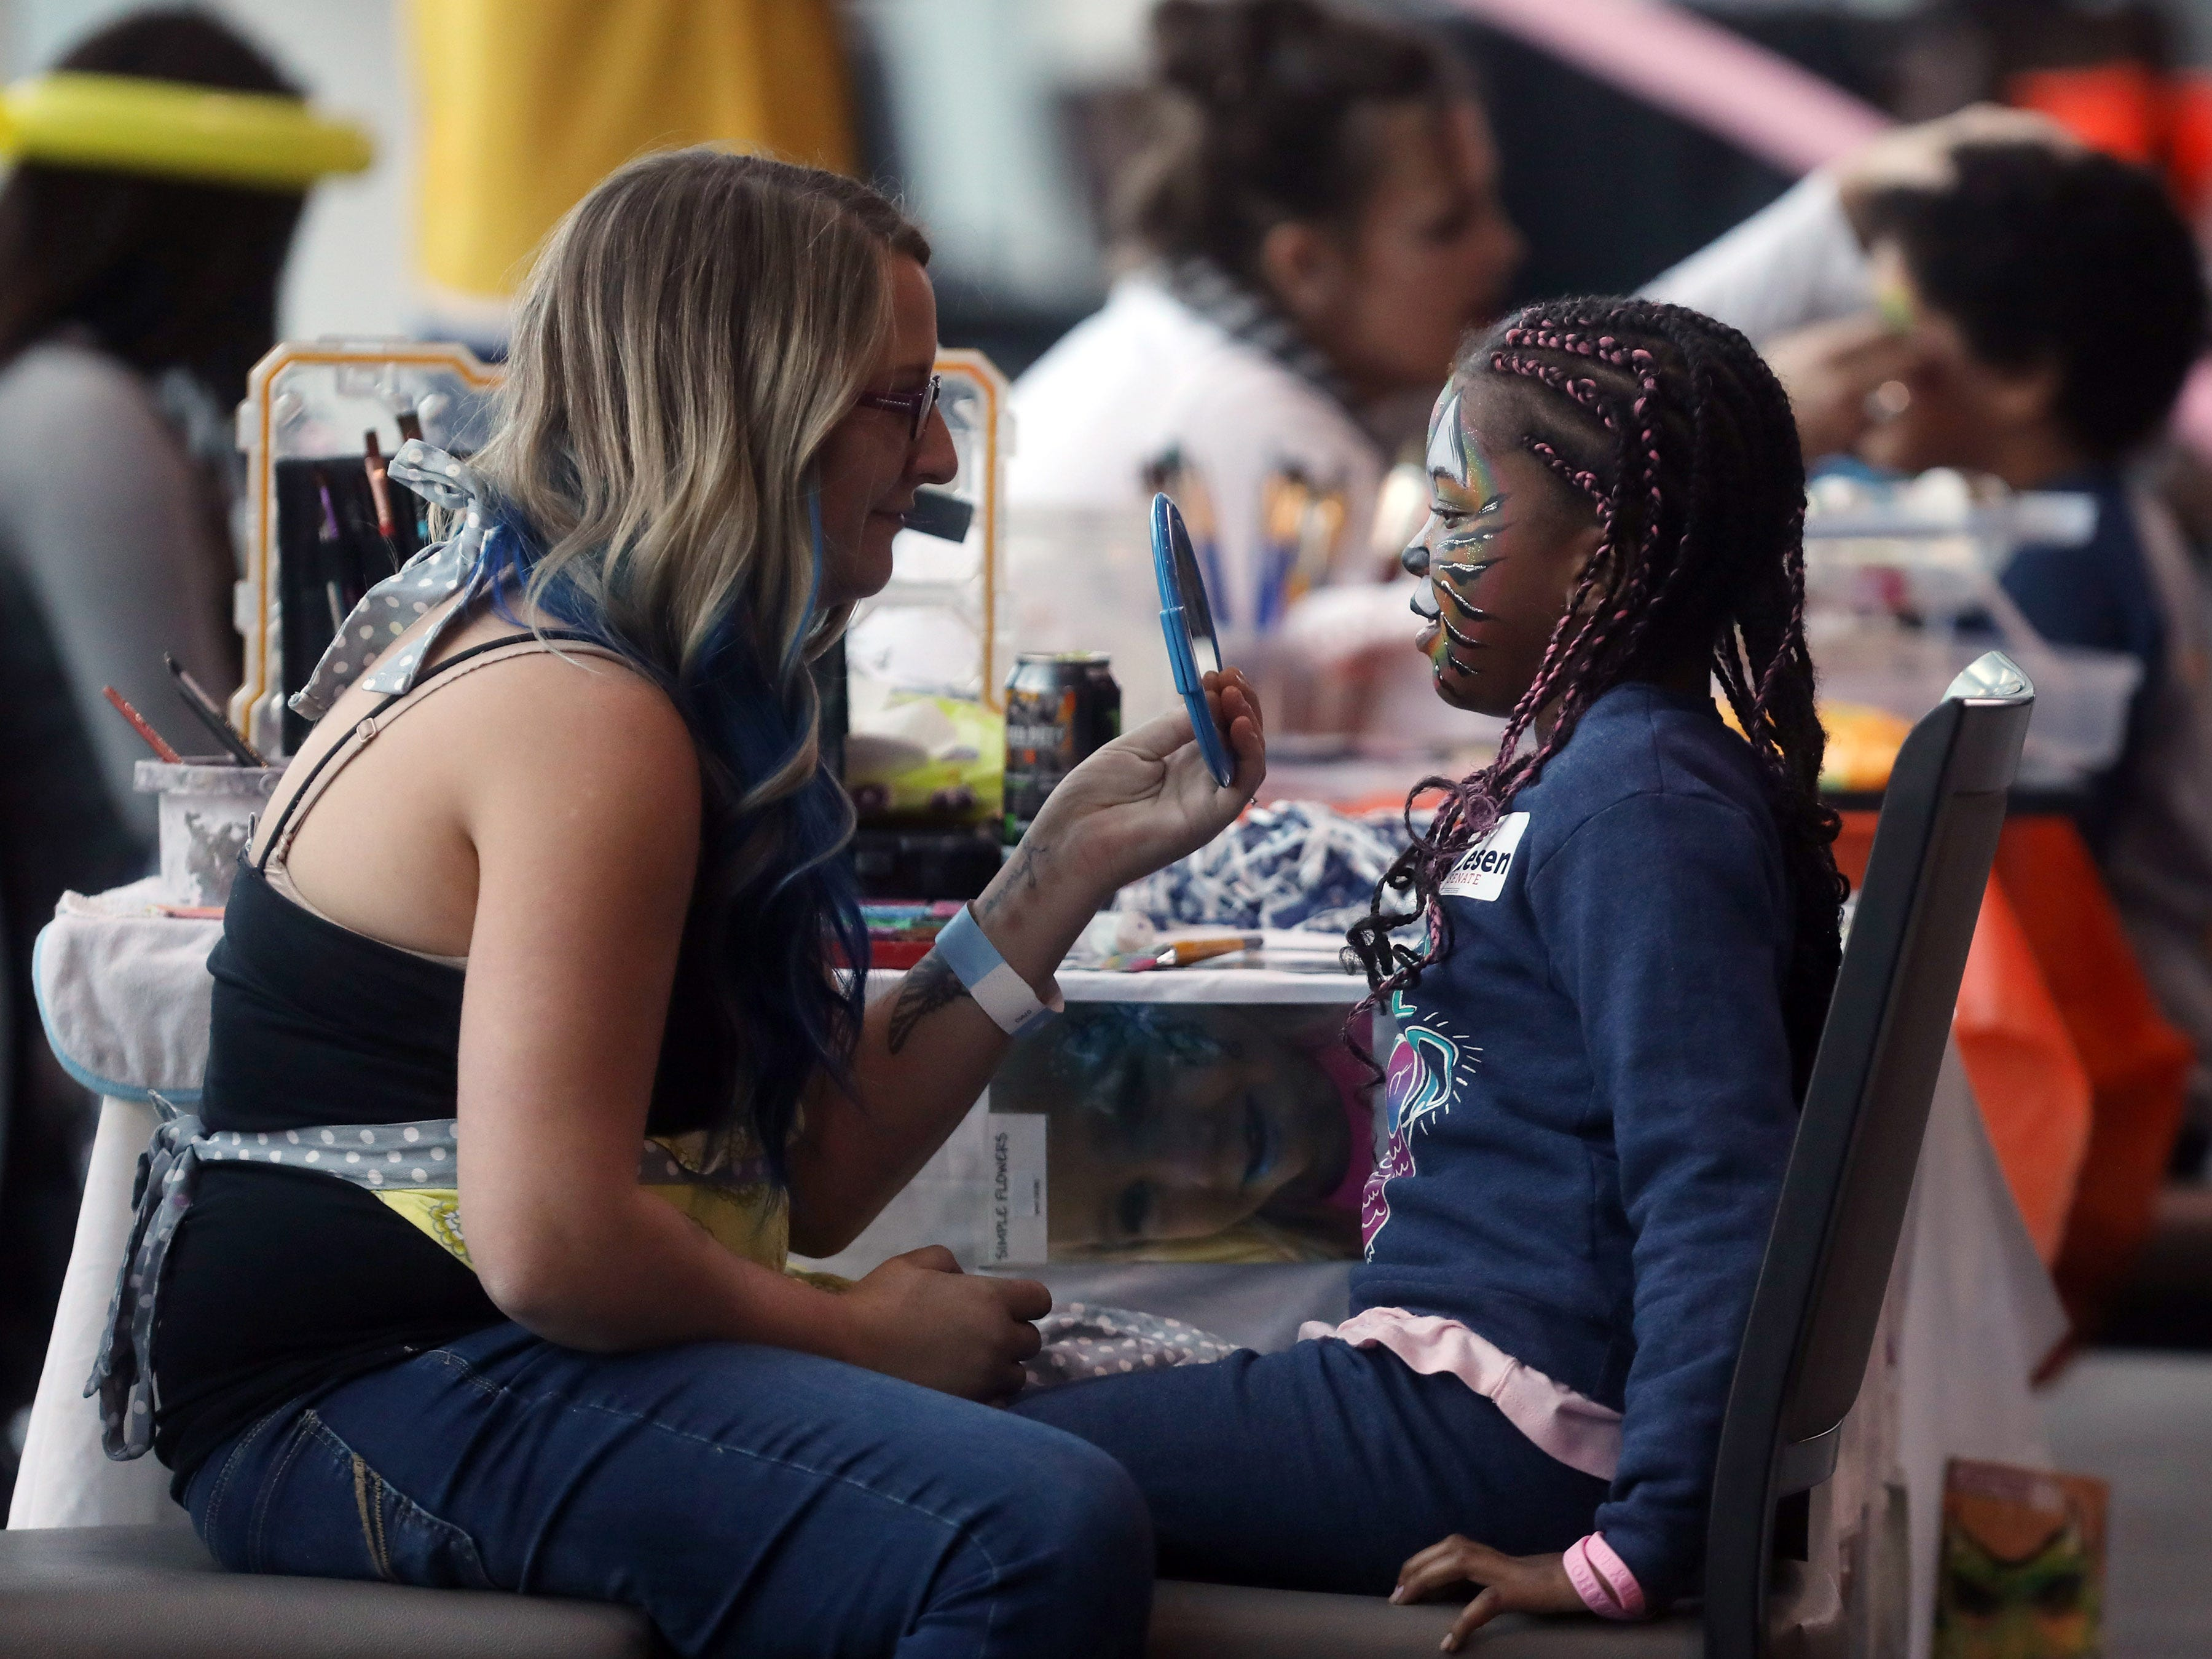 Tyler Taylor, right, admires the face painting she received from Grace Emison  Saturday, October 27, 2018, during a rally at Nissan Staidum for Phil Bredesen which celebrated his involvement in bringing the Titans and Predators to Nashville.